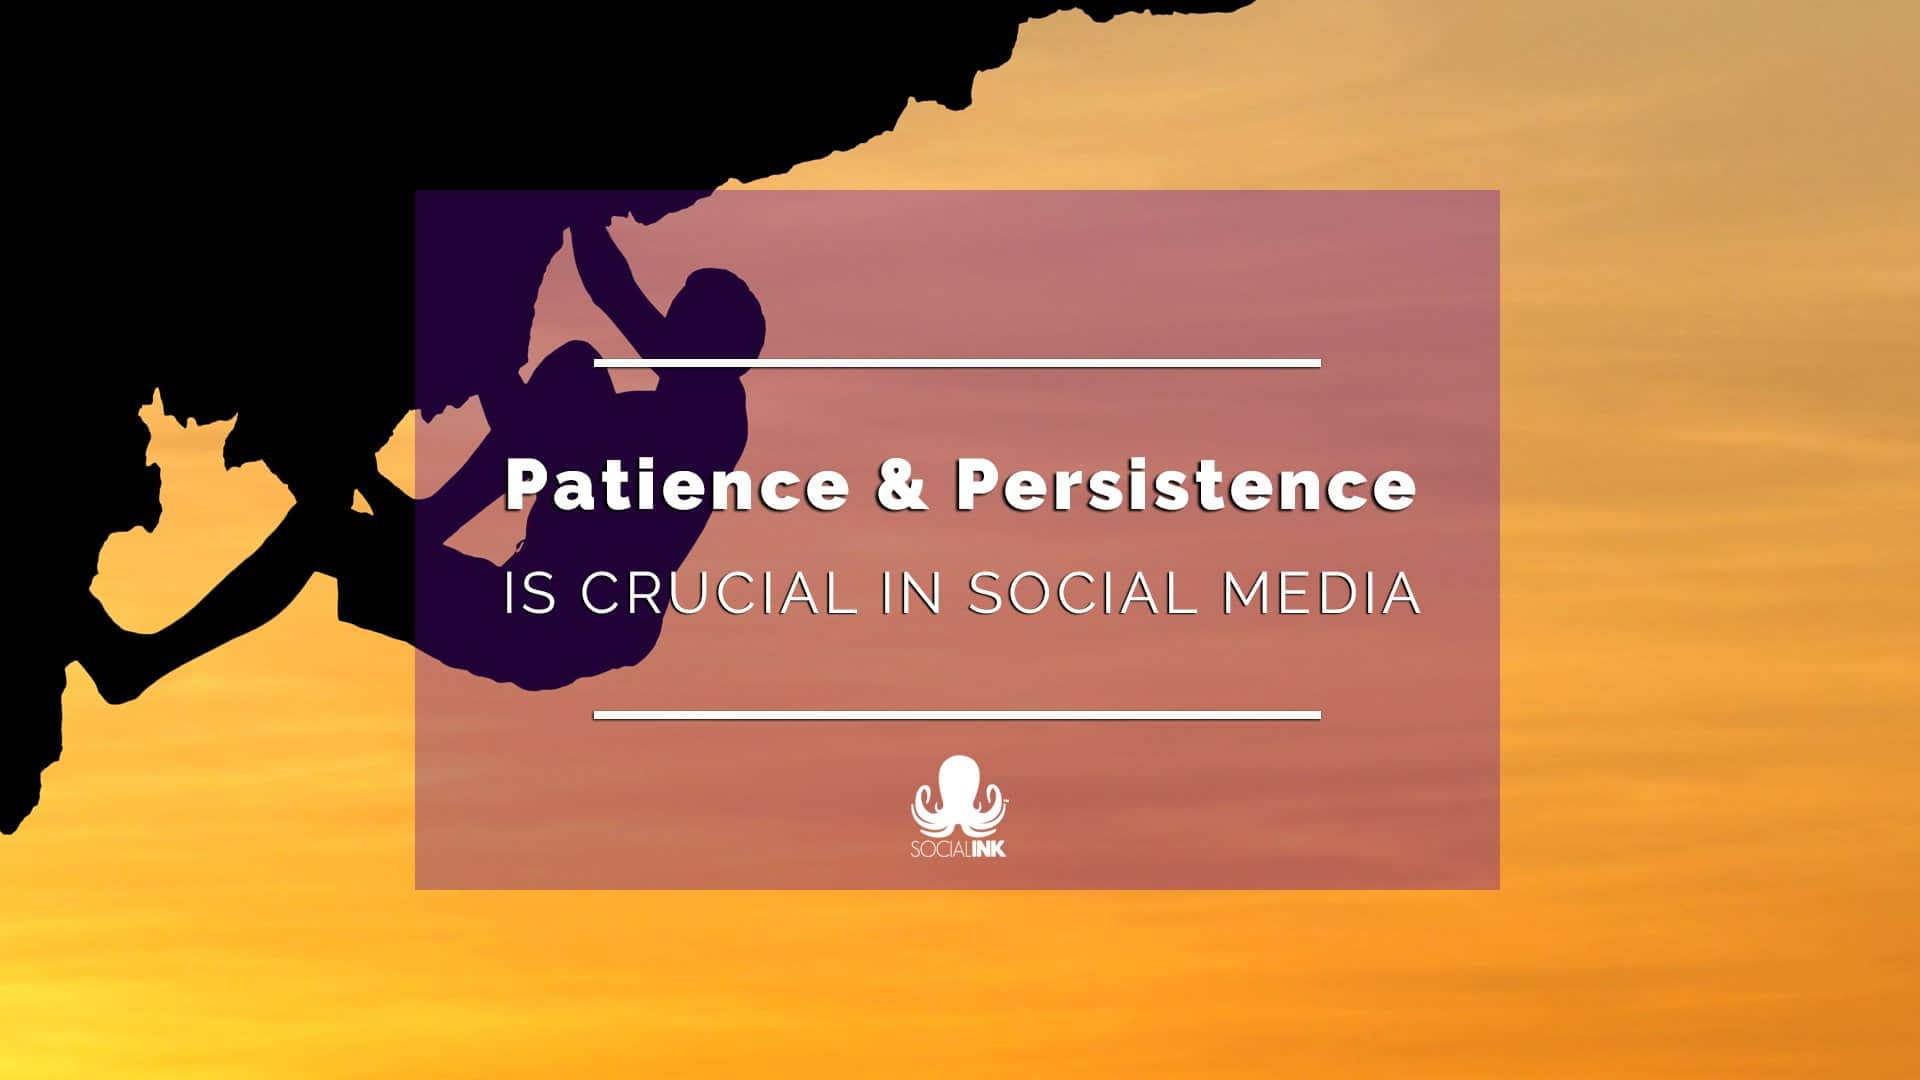 Patience and Persistence are Crucial in Social Media Marketing